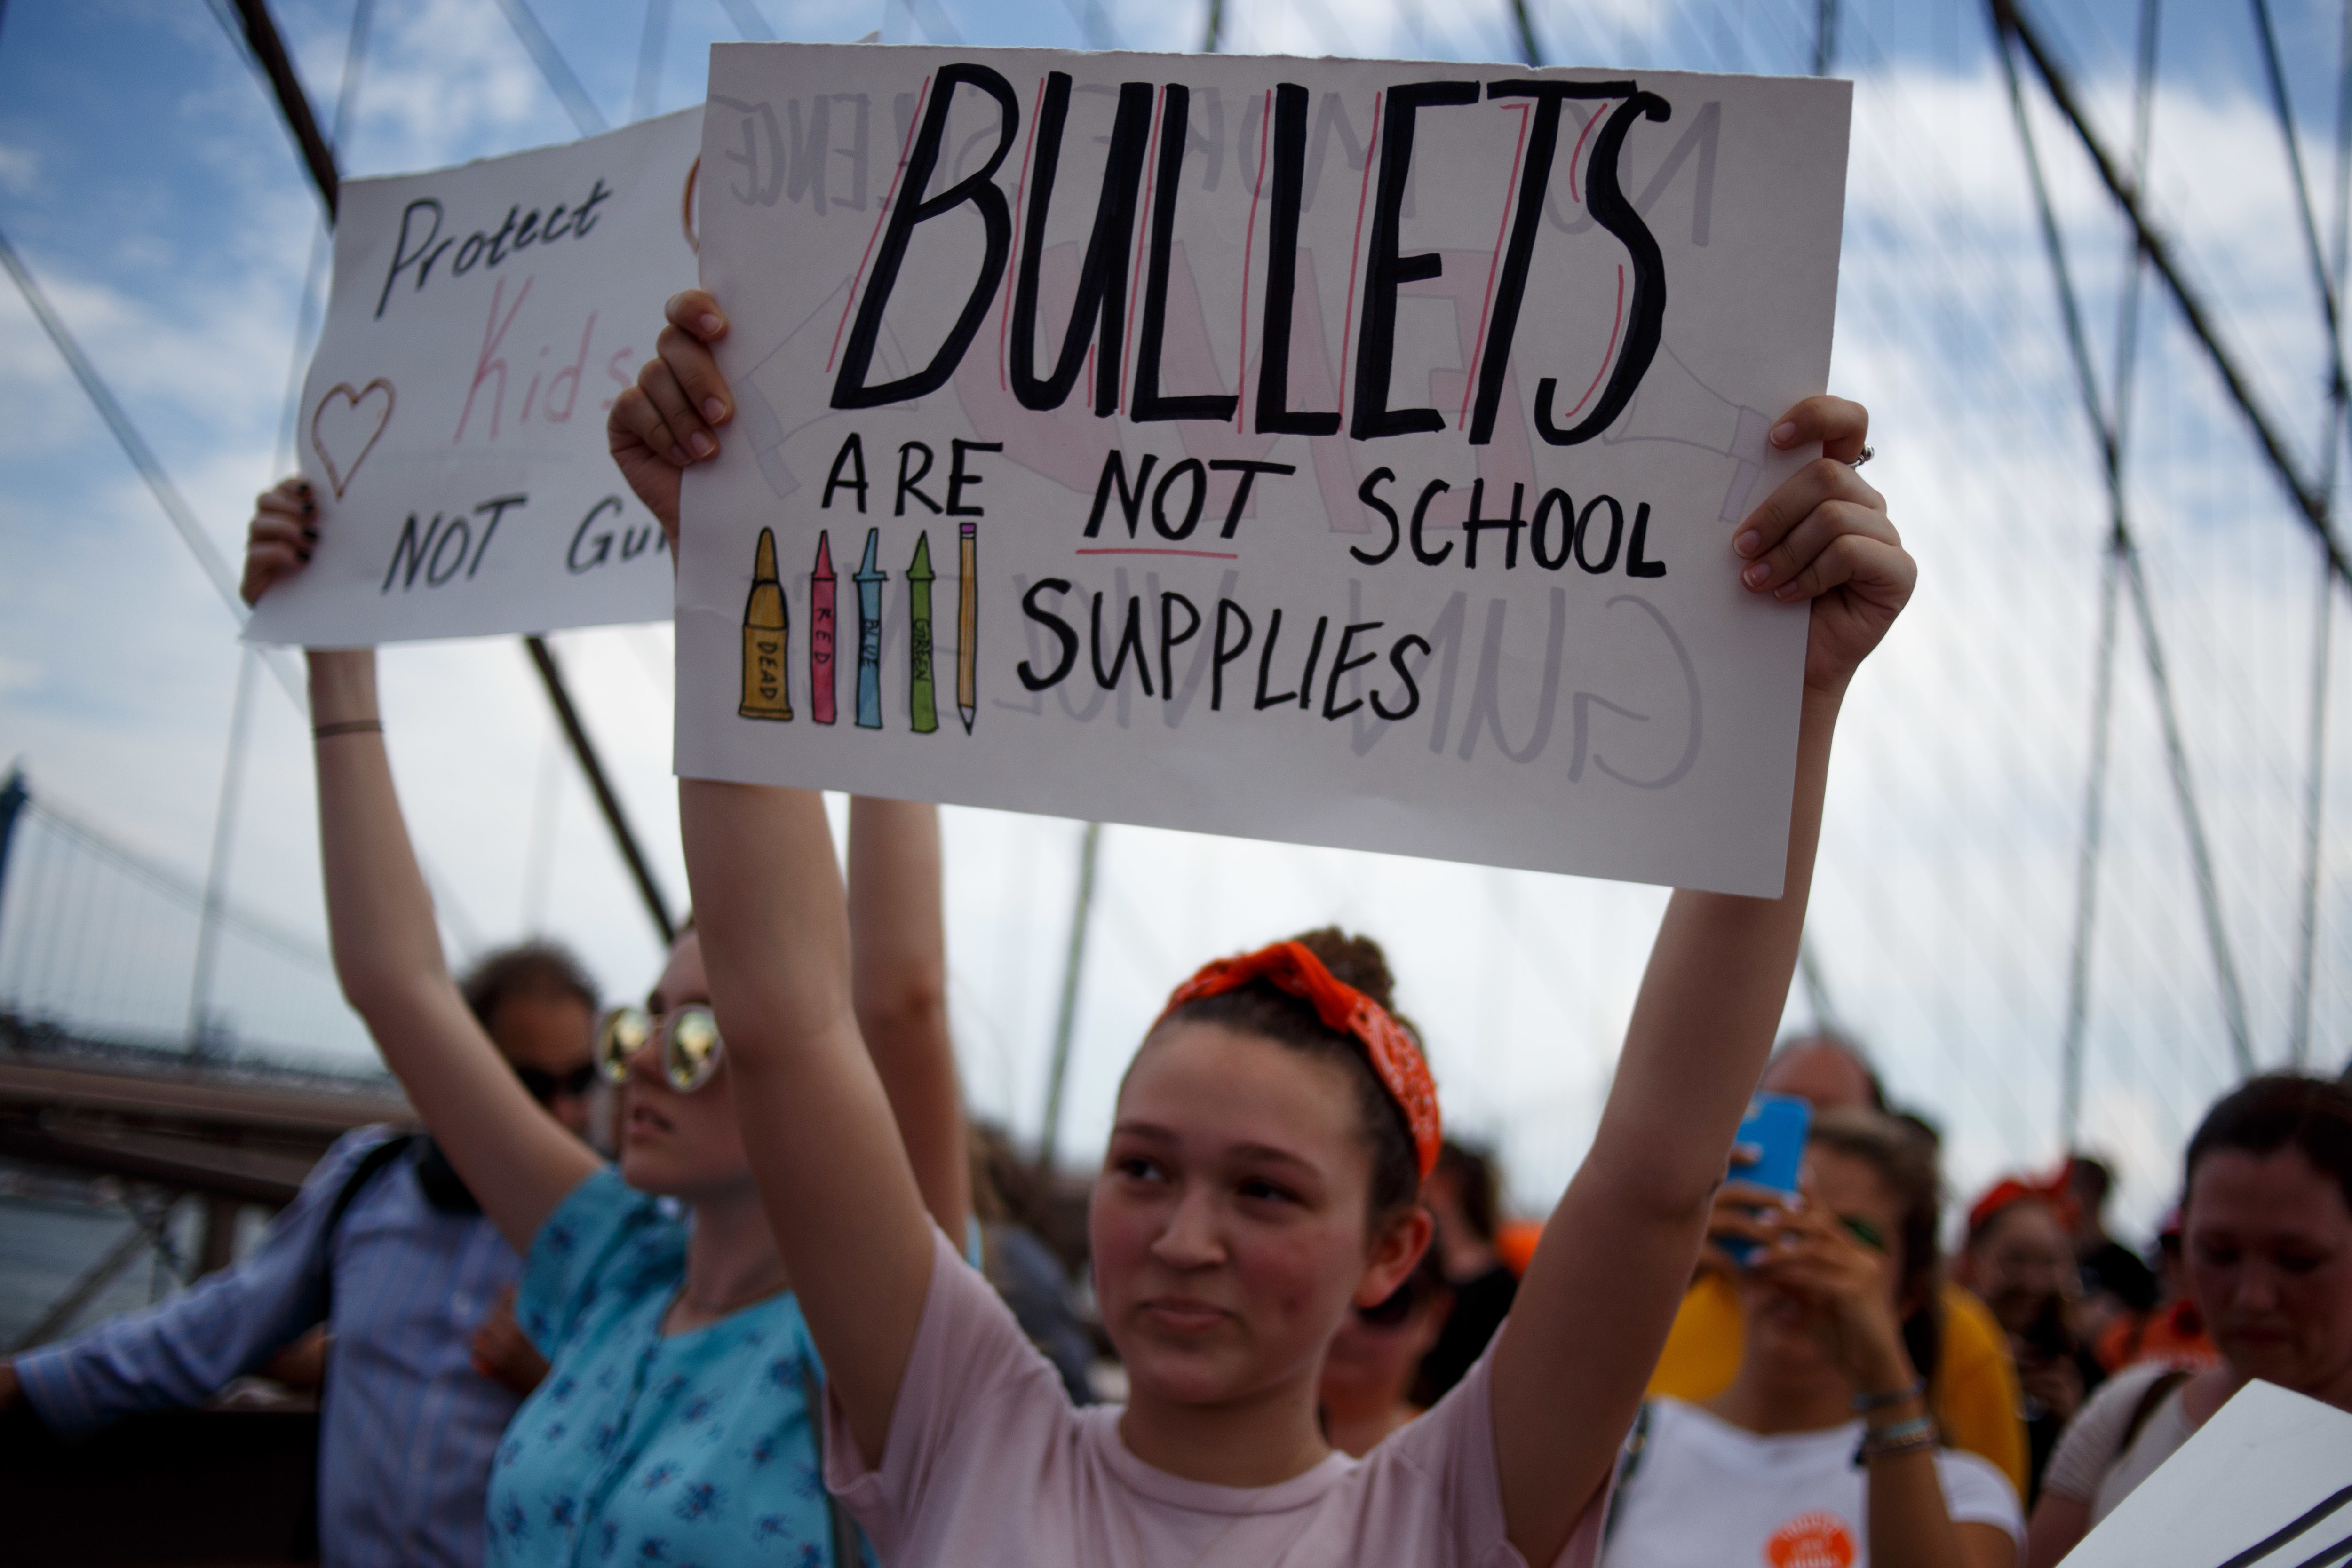 Activists seeking an end to gun violence in American schools and society participate in the Youth Over Guns March, crossing the Brooklyn Bridge into Manhattan.